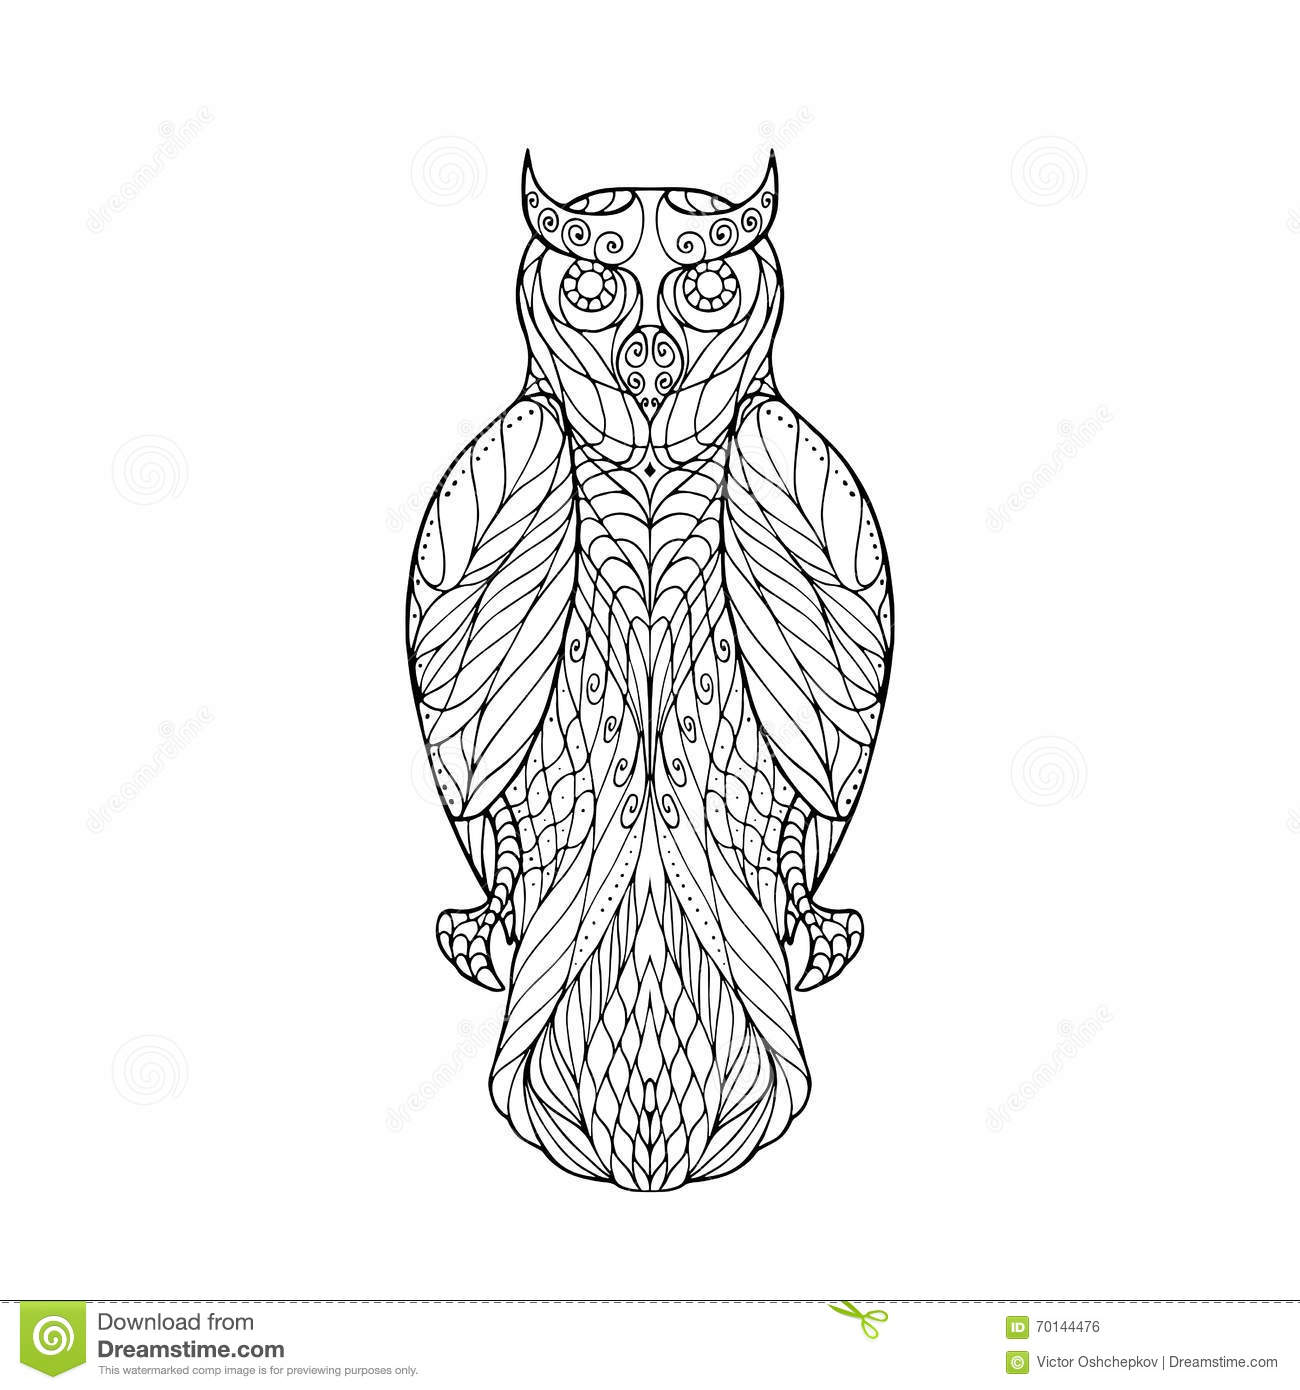 anti stress coloring pages owls - photo#14